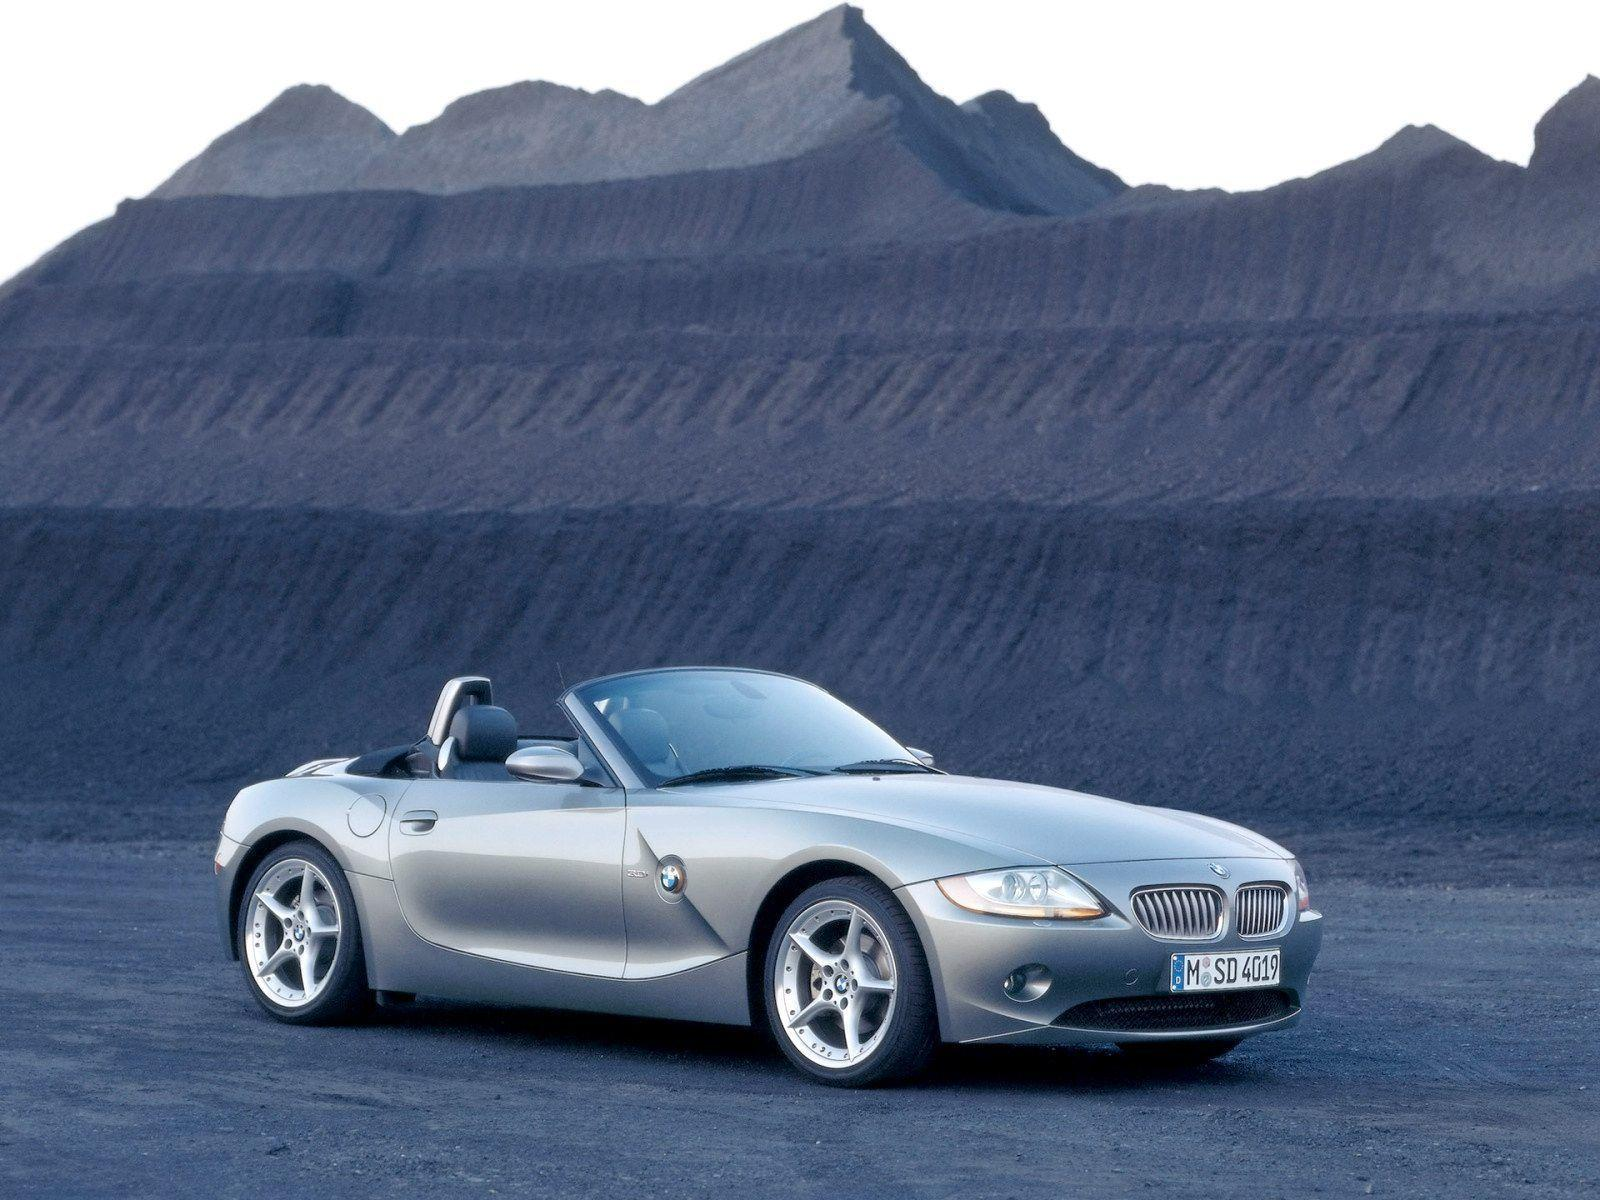 BMW Z4 Roadster Wallpaper 02 - 1600x1200